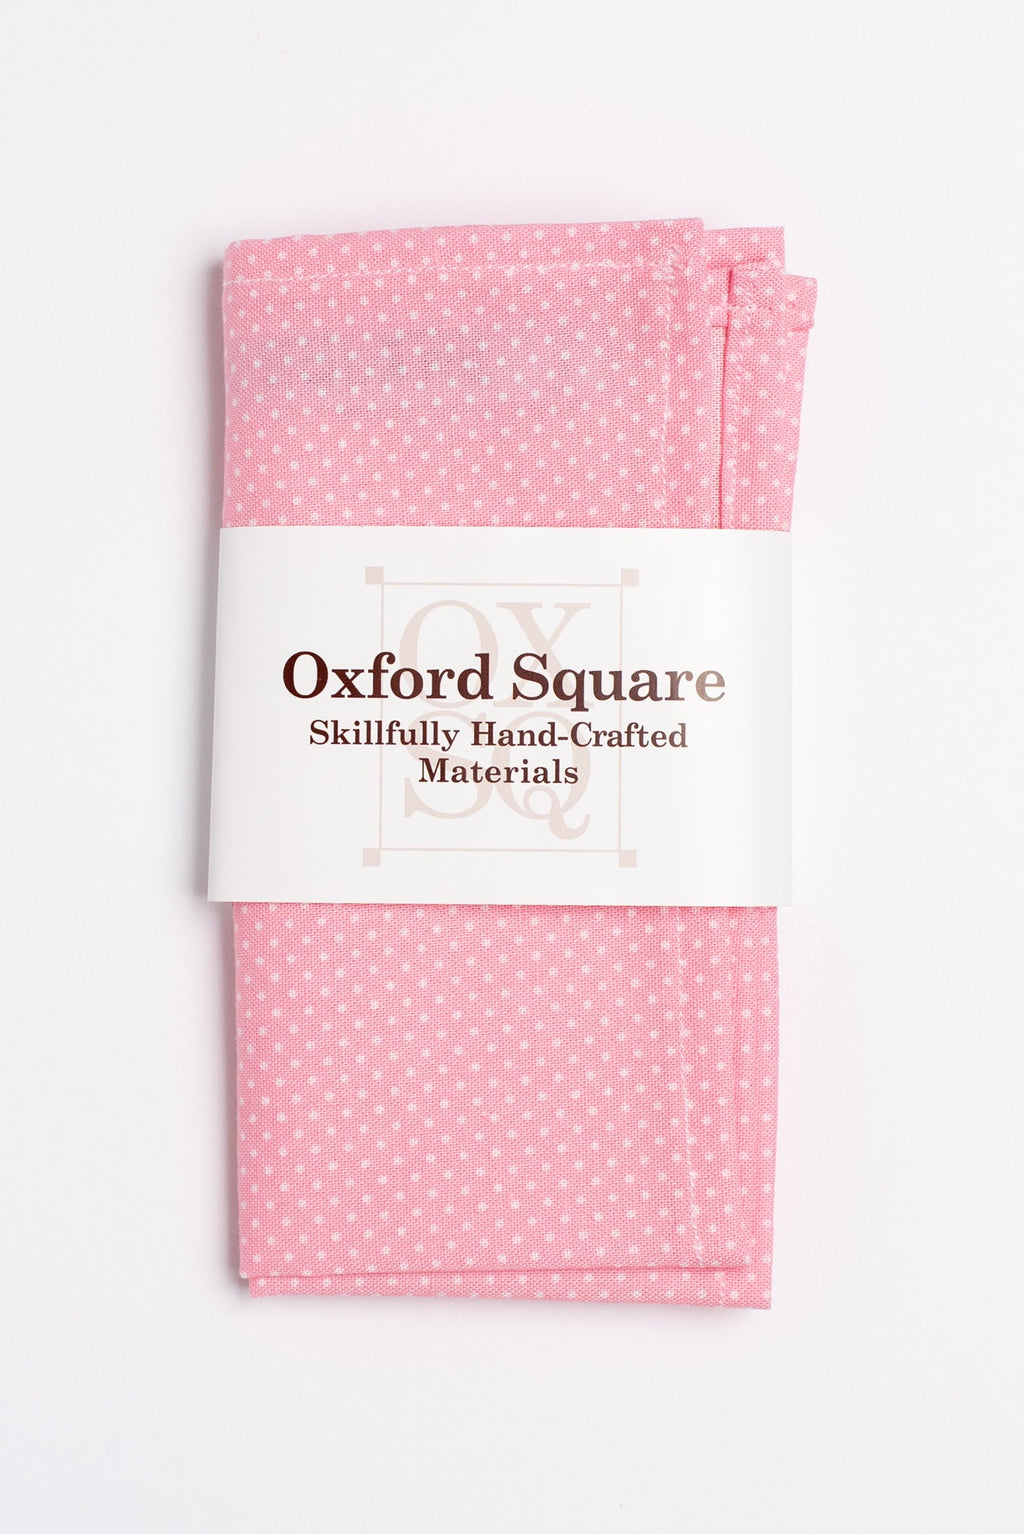 Pink and white polka dot pattern pocket square - Oxford Square